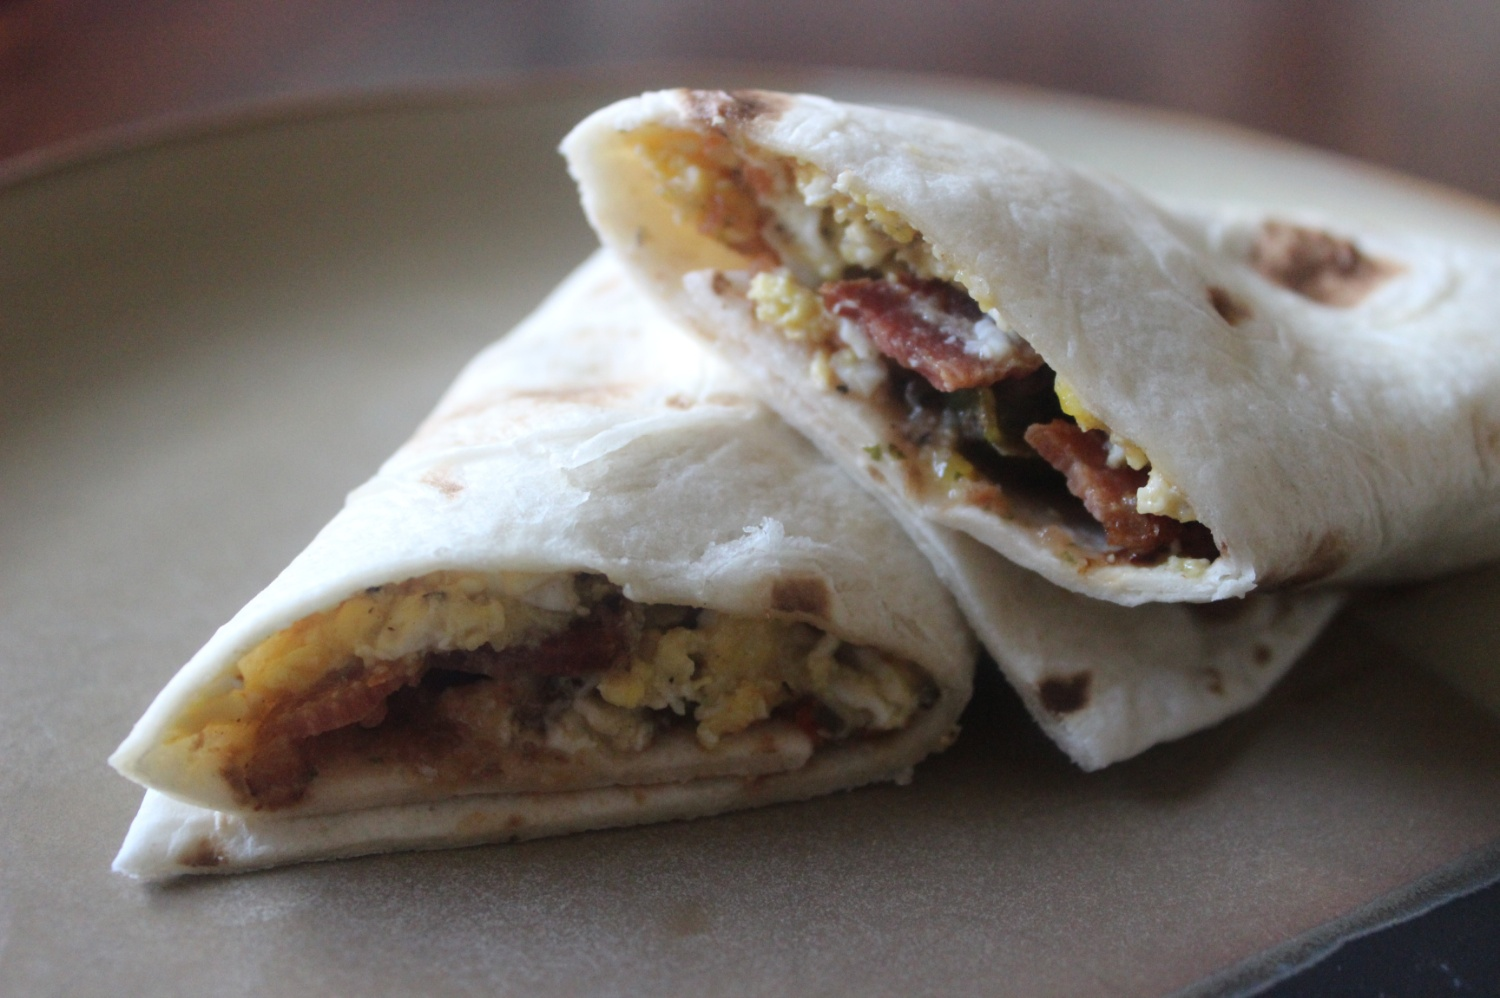 Bacon and Egg Tacos mommyluvs2cook